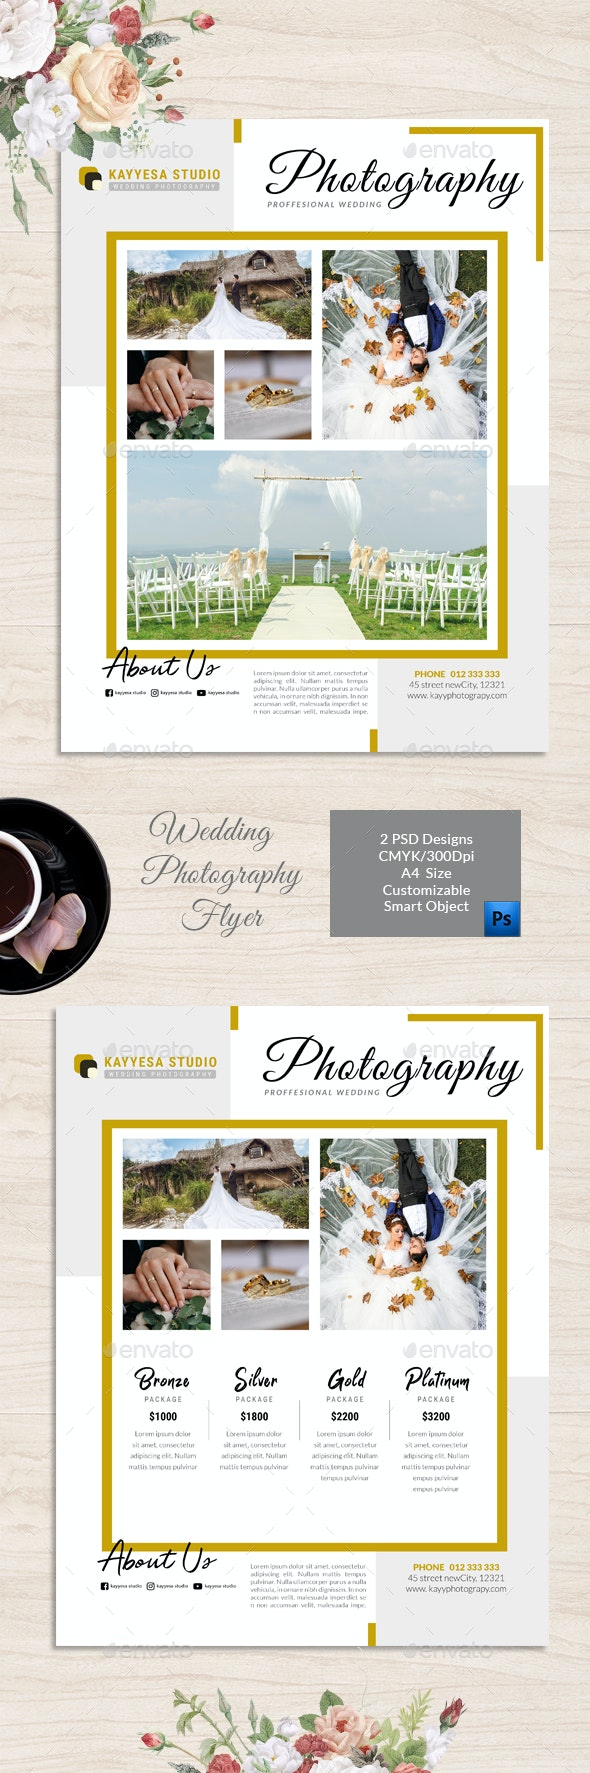 Wedding Photography Flyer v2 - Flyers Print Templates